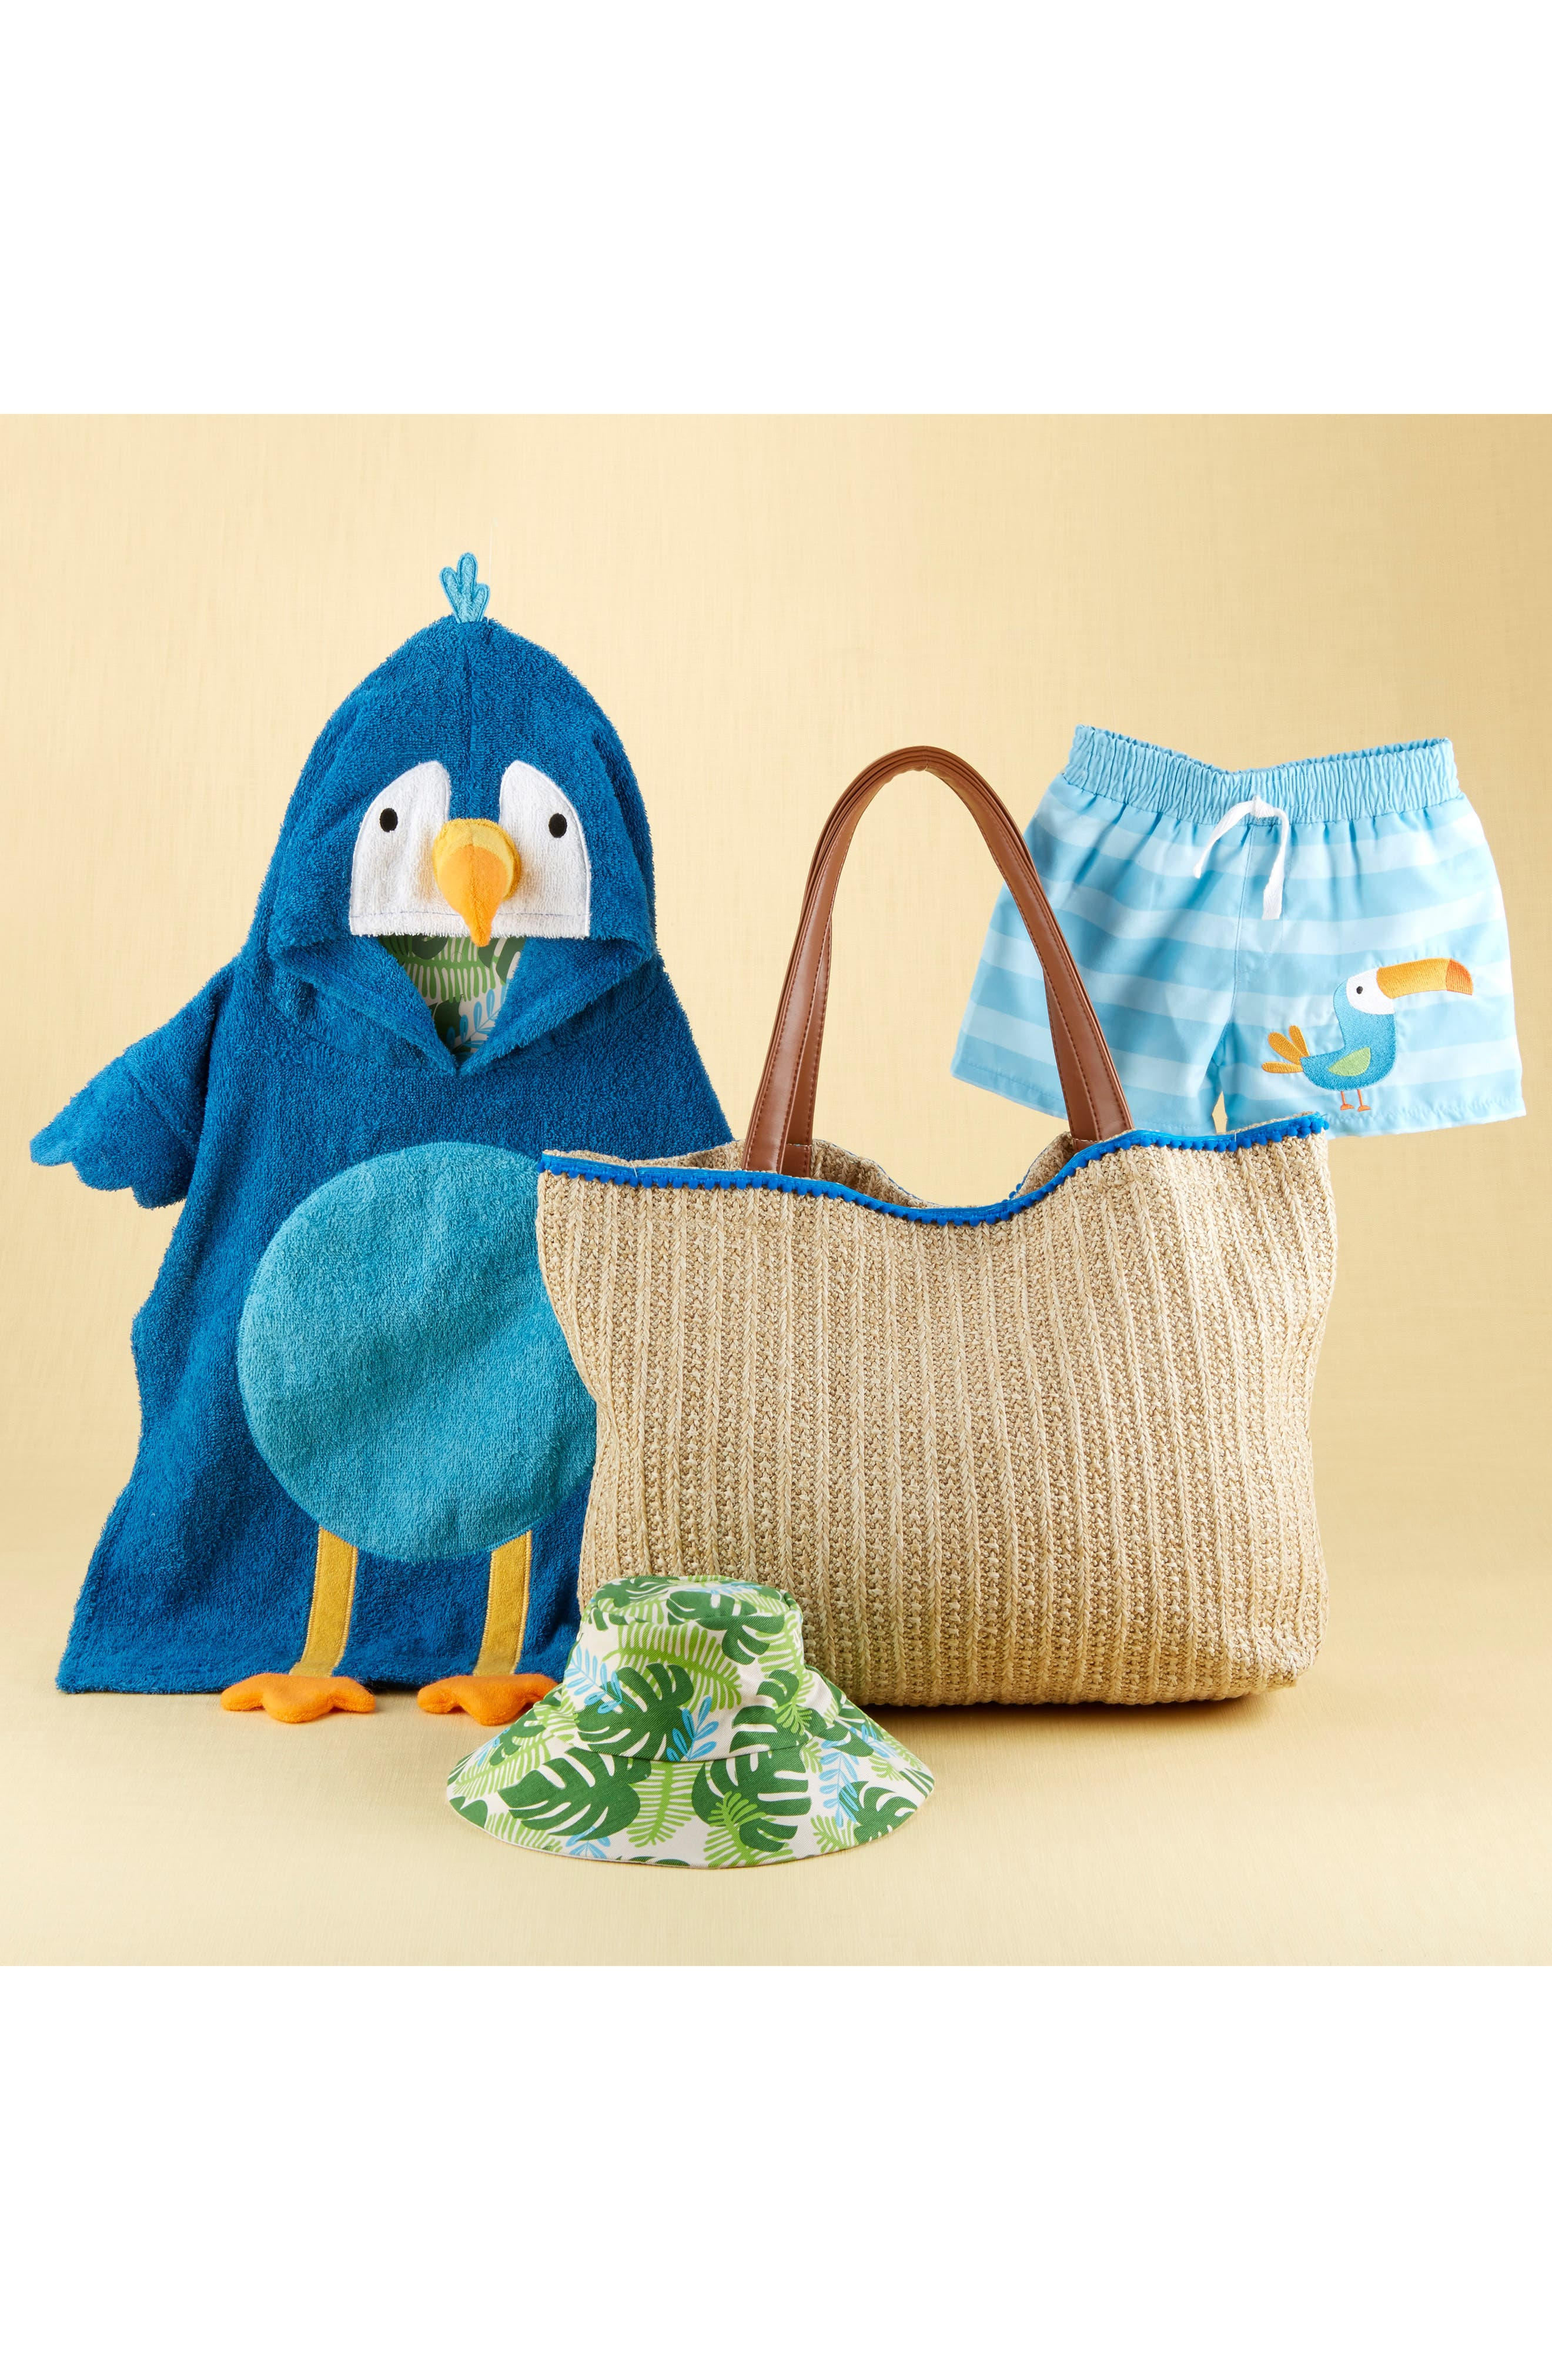 Tropical Hooded Towel, Swimsuit, Sun Hat & Tote Set,                             Alternate thumbnail 4, color,                             BLUE/ GREY/ WHITE/ BROWN